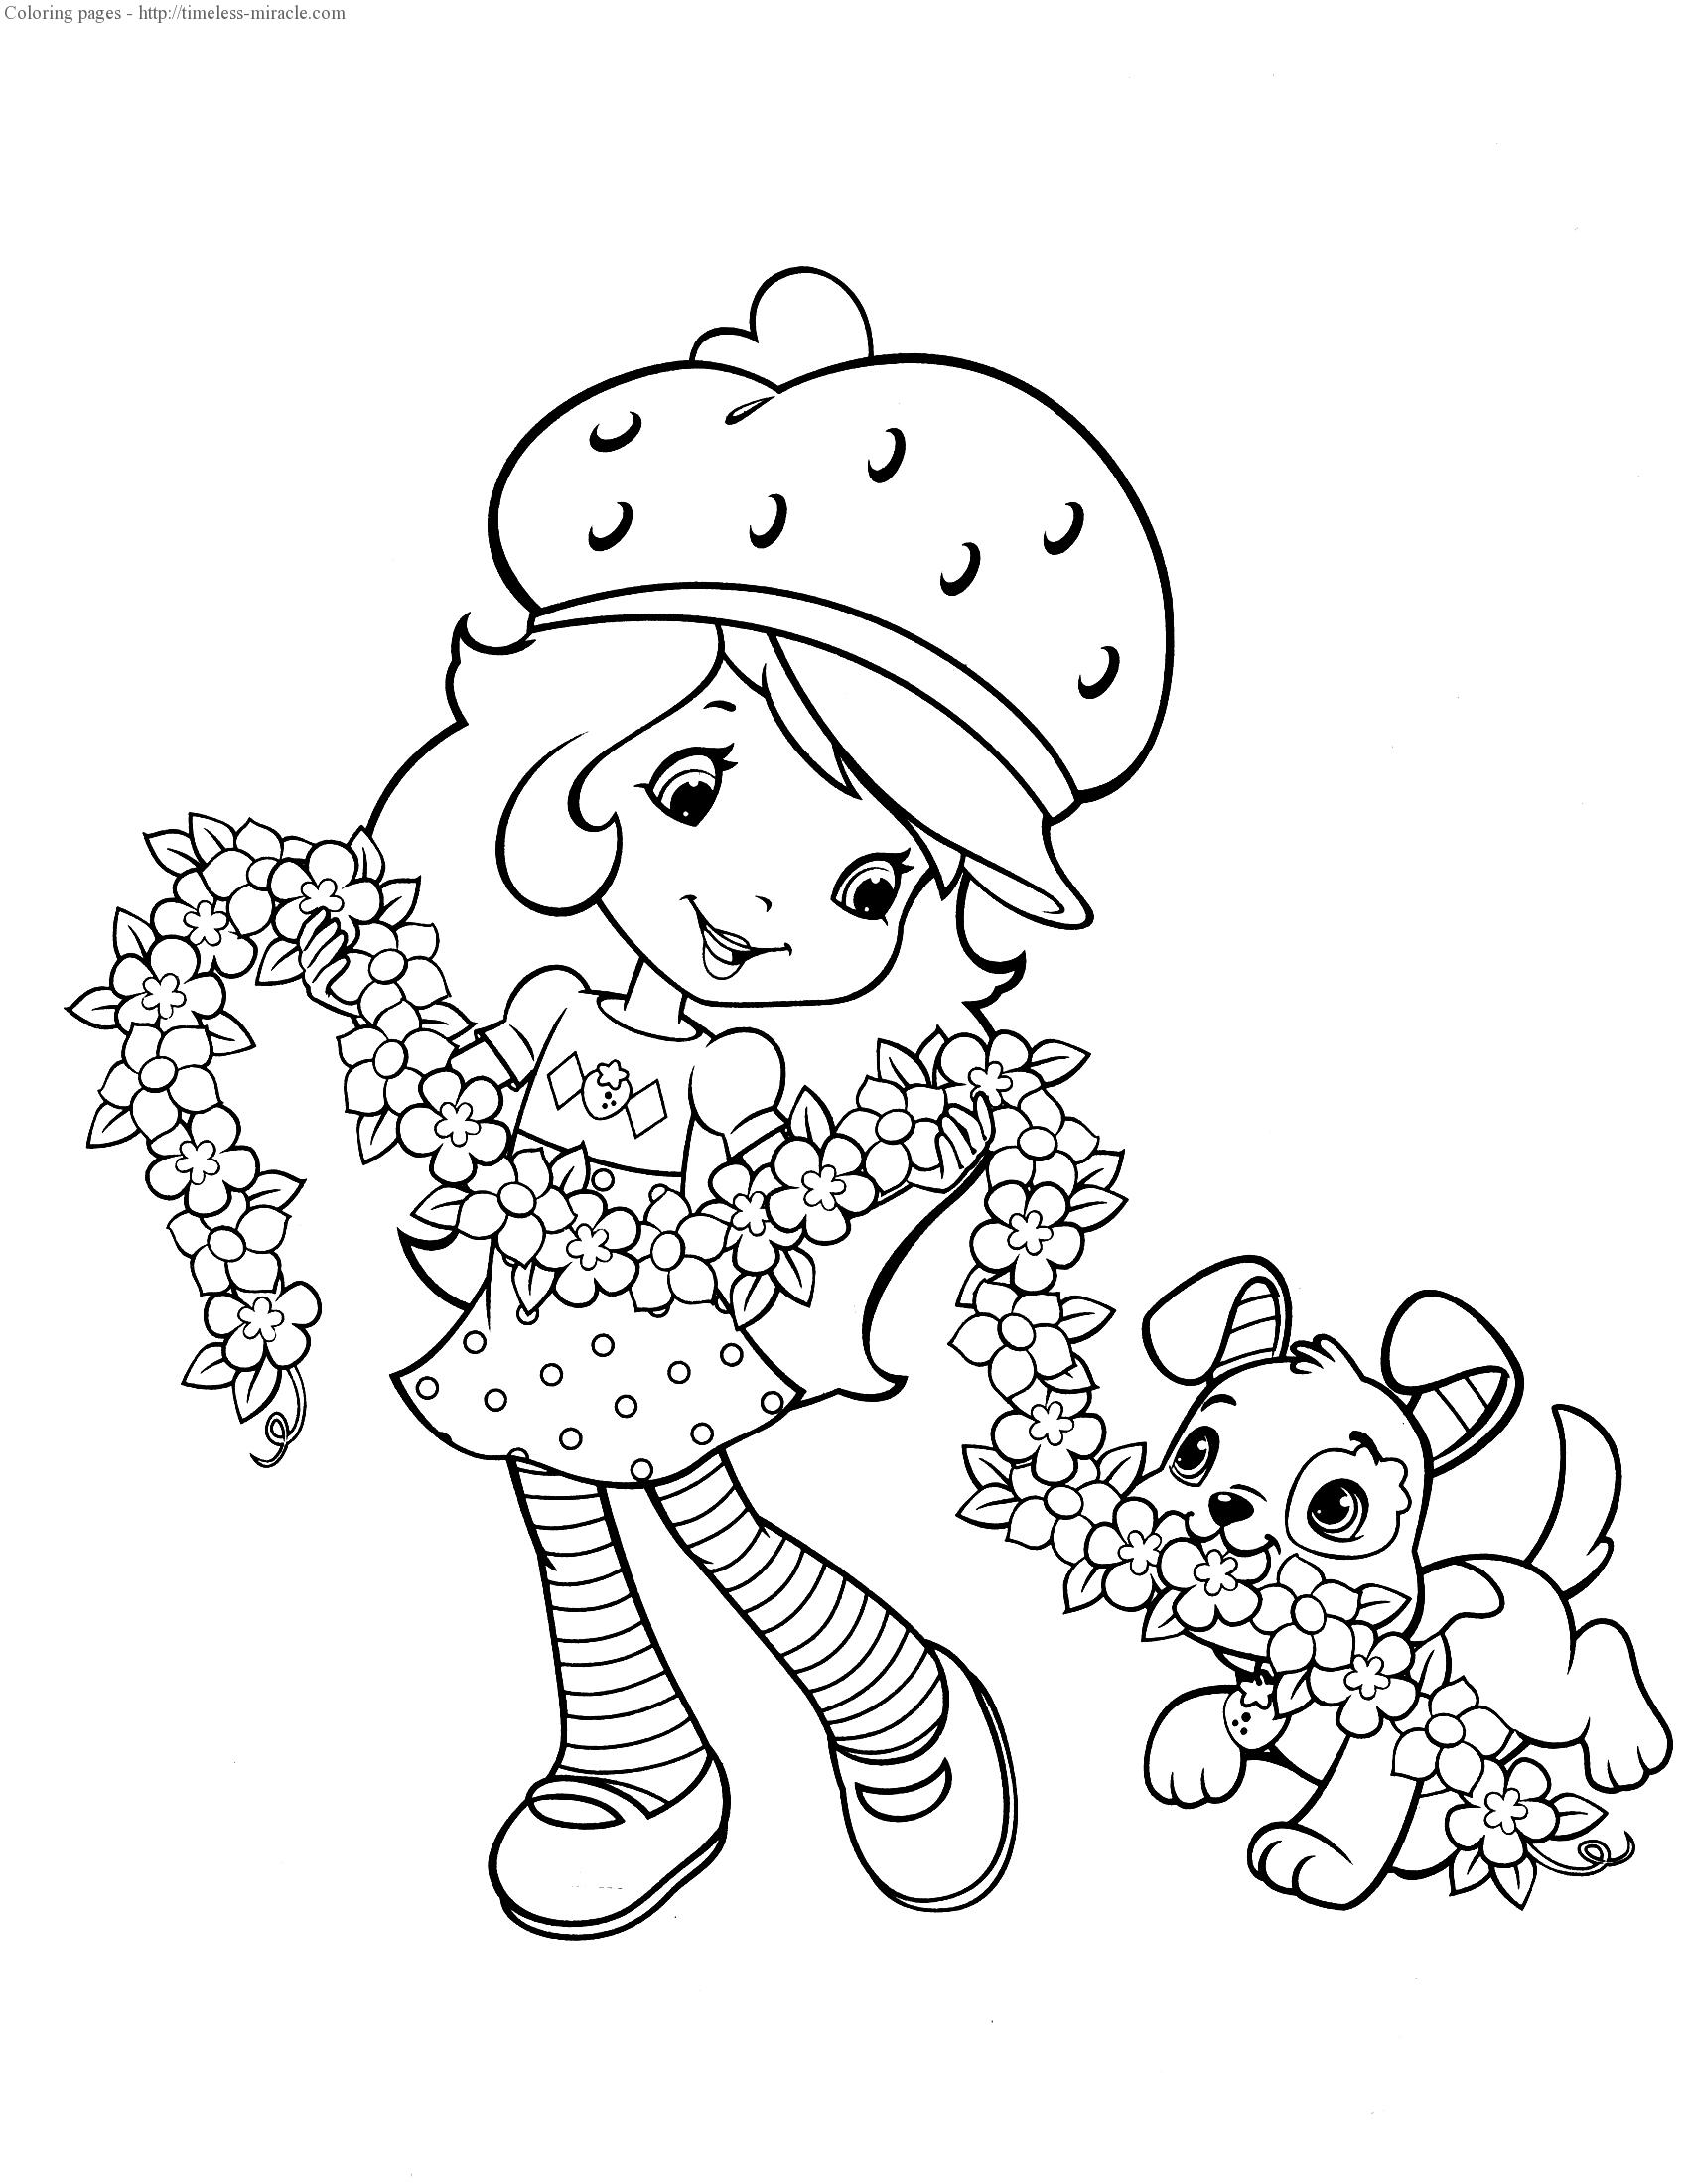 strawberry shortcake princess coloring pages strawberry shortcake coloring page dibujos dibujos para coloring shortcake pages strawberry princess